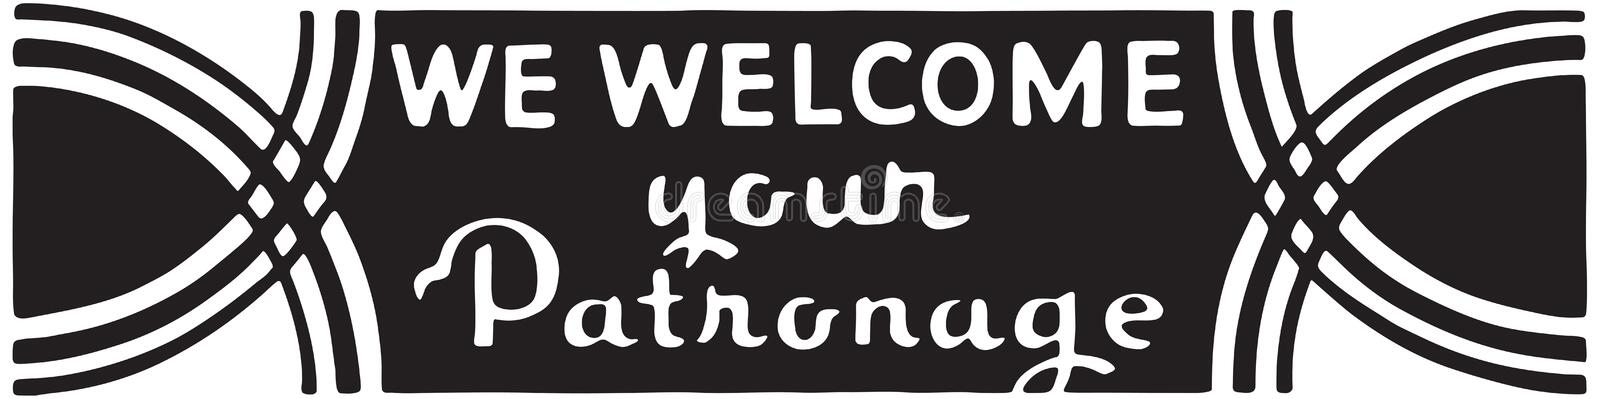 We Welcome Your Patronage 2. Retro Ad Art Banner royalty free illustration